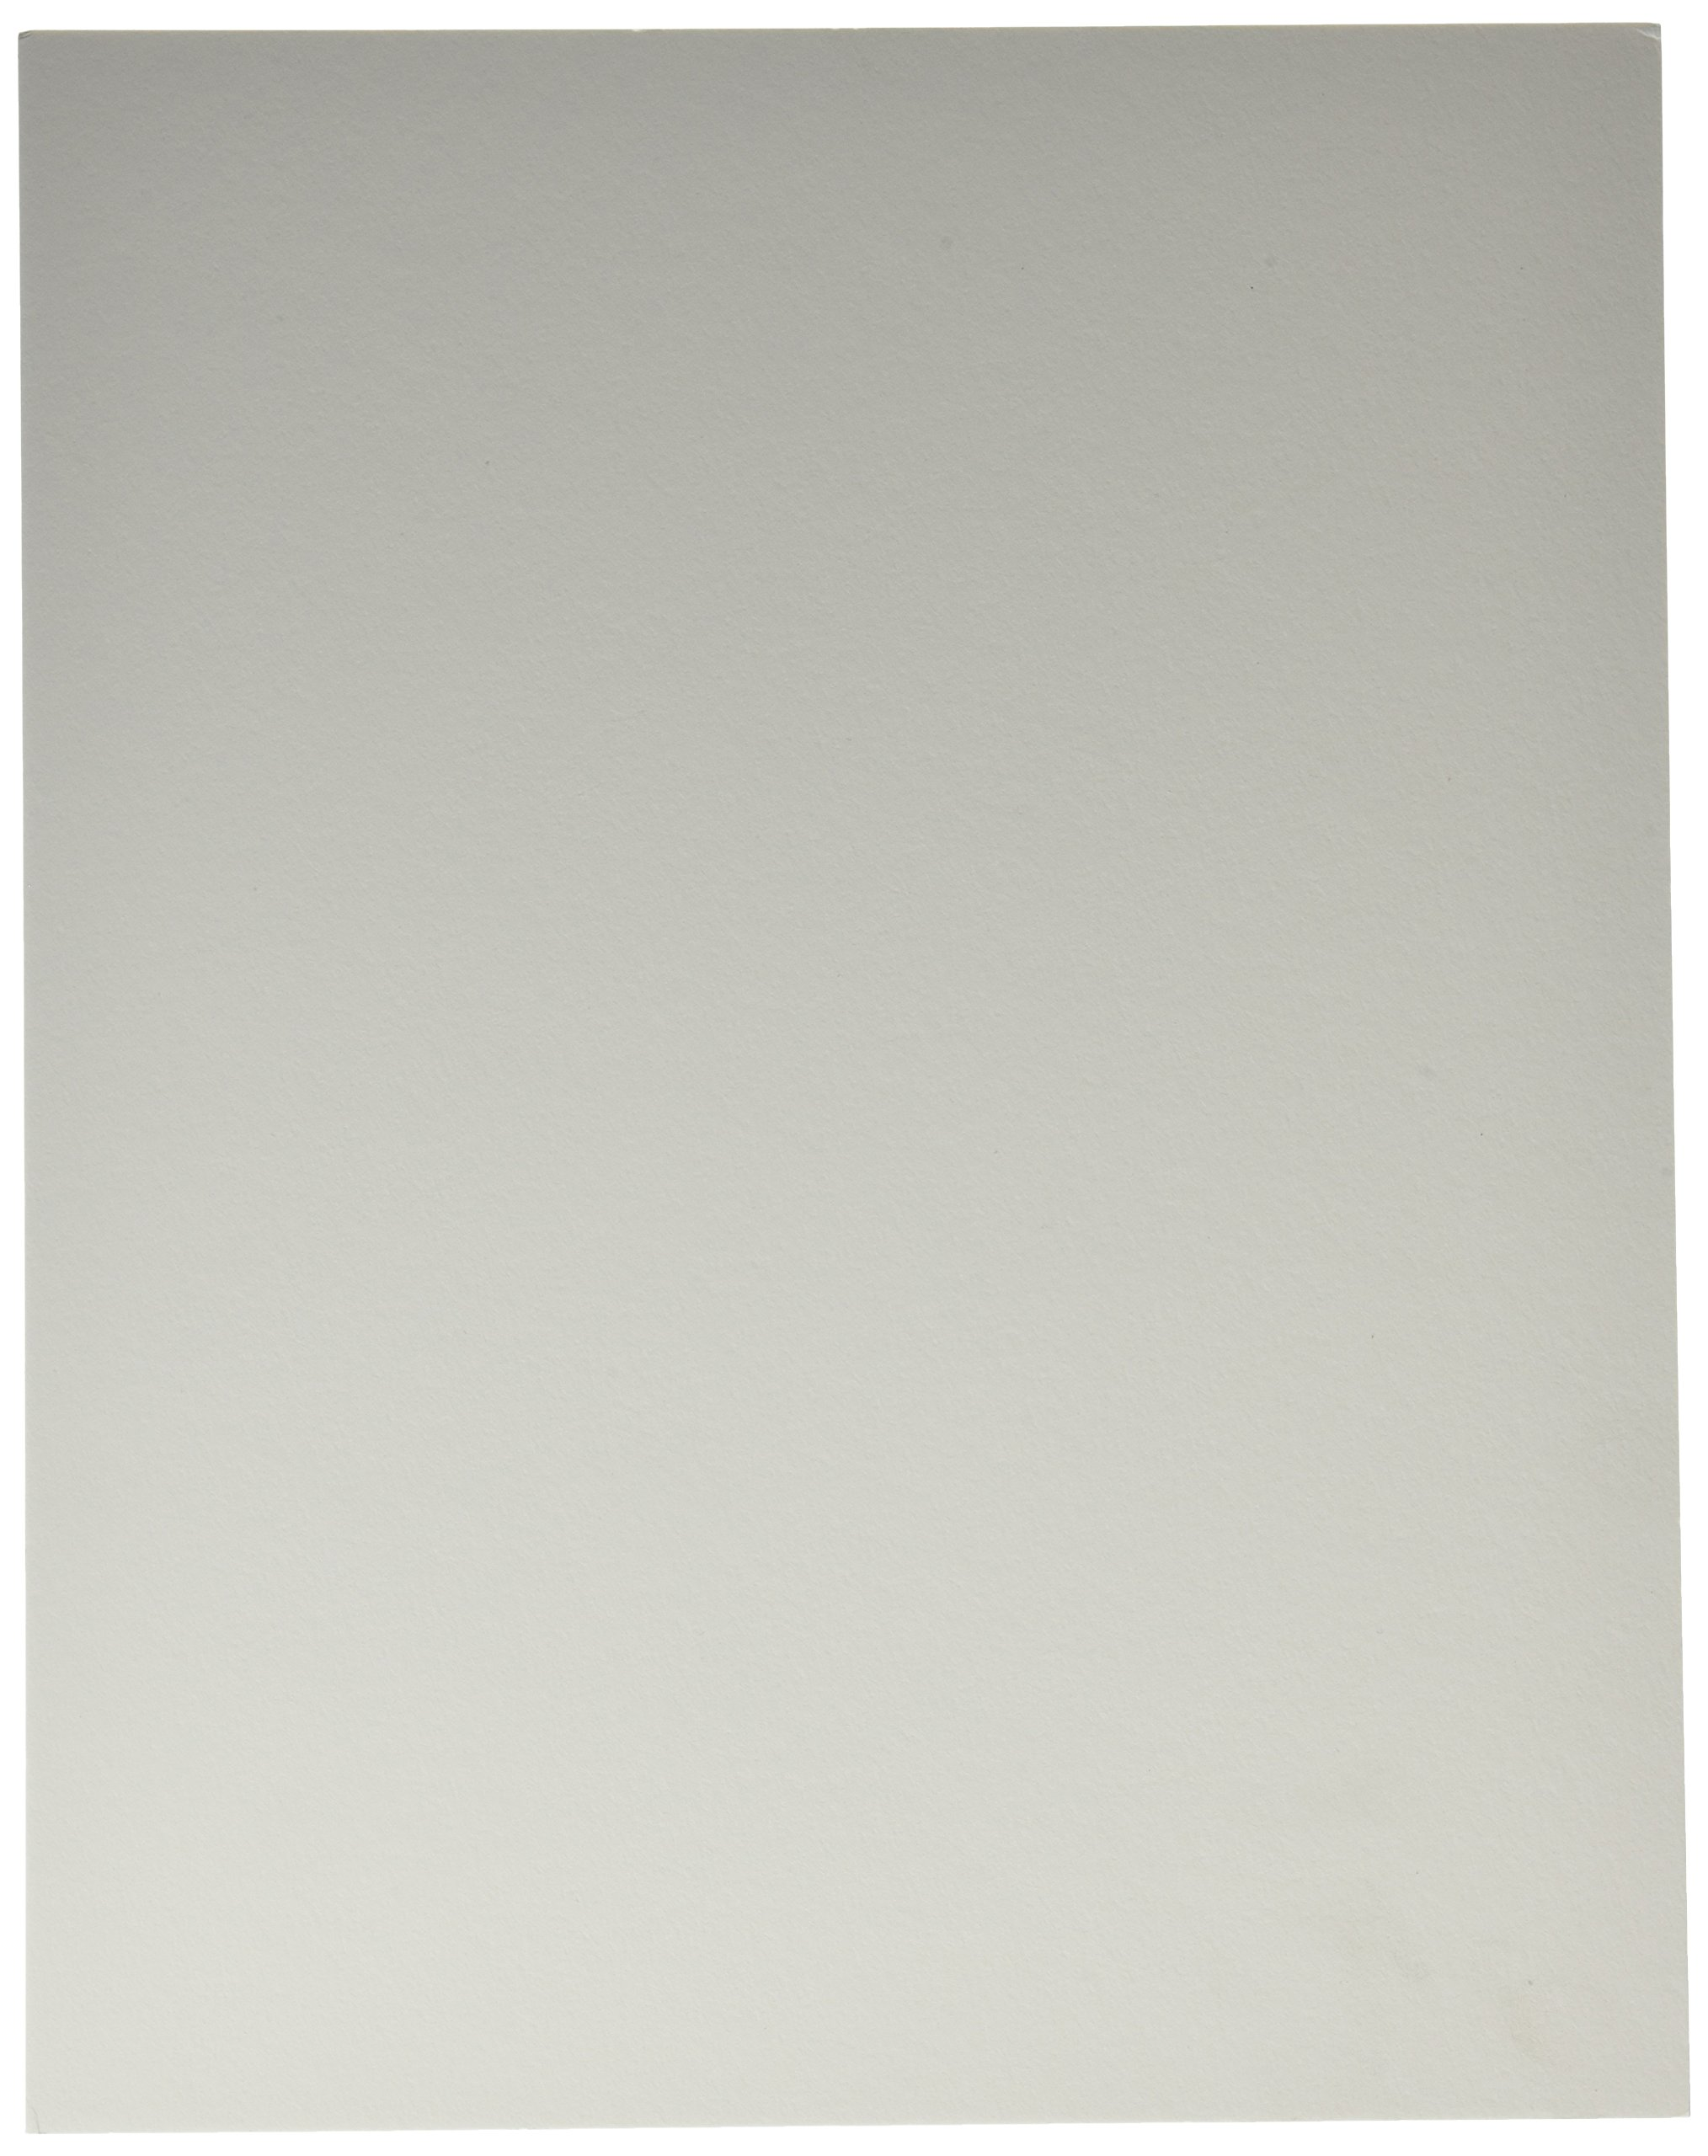 Archival Methods Conservation Mat Board, 11 x 14'', 4 Ply, Pearl White, Package of 25 by Archival Methods